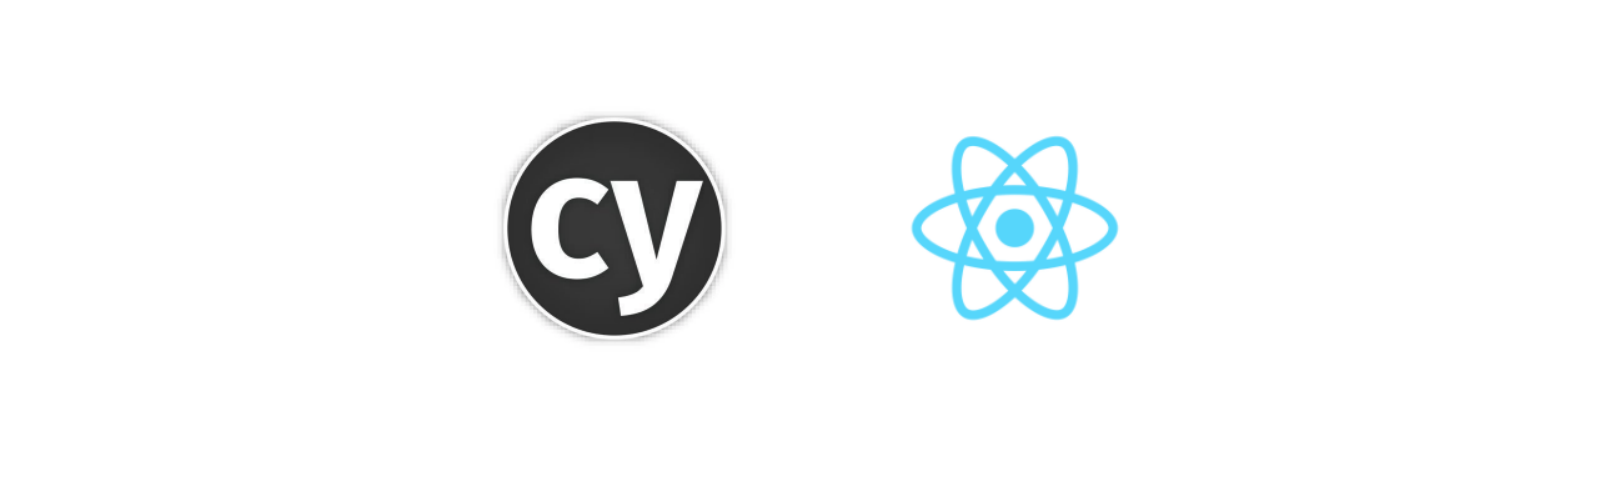 End to End Testing React Apps With Cypress - Bits and Pieces